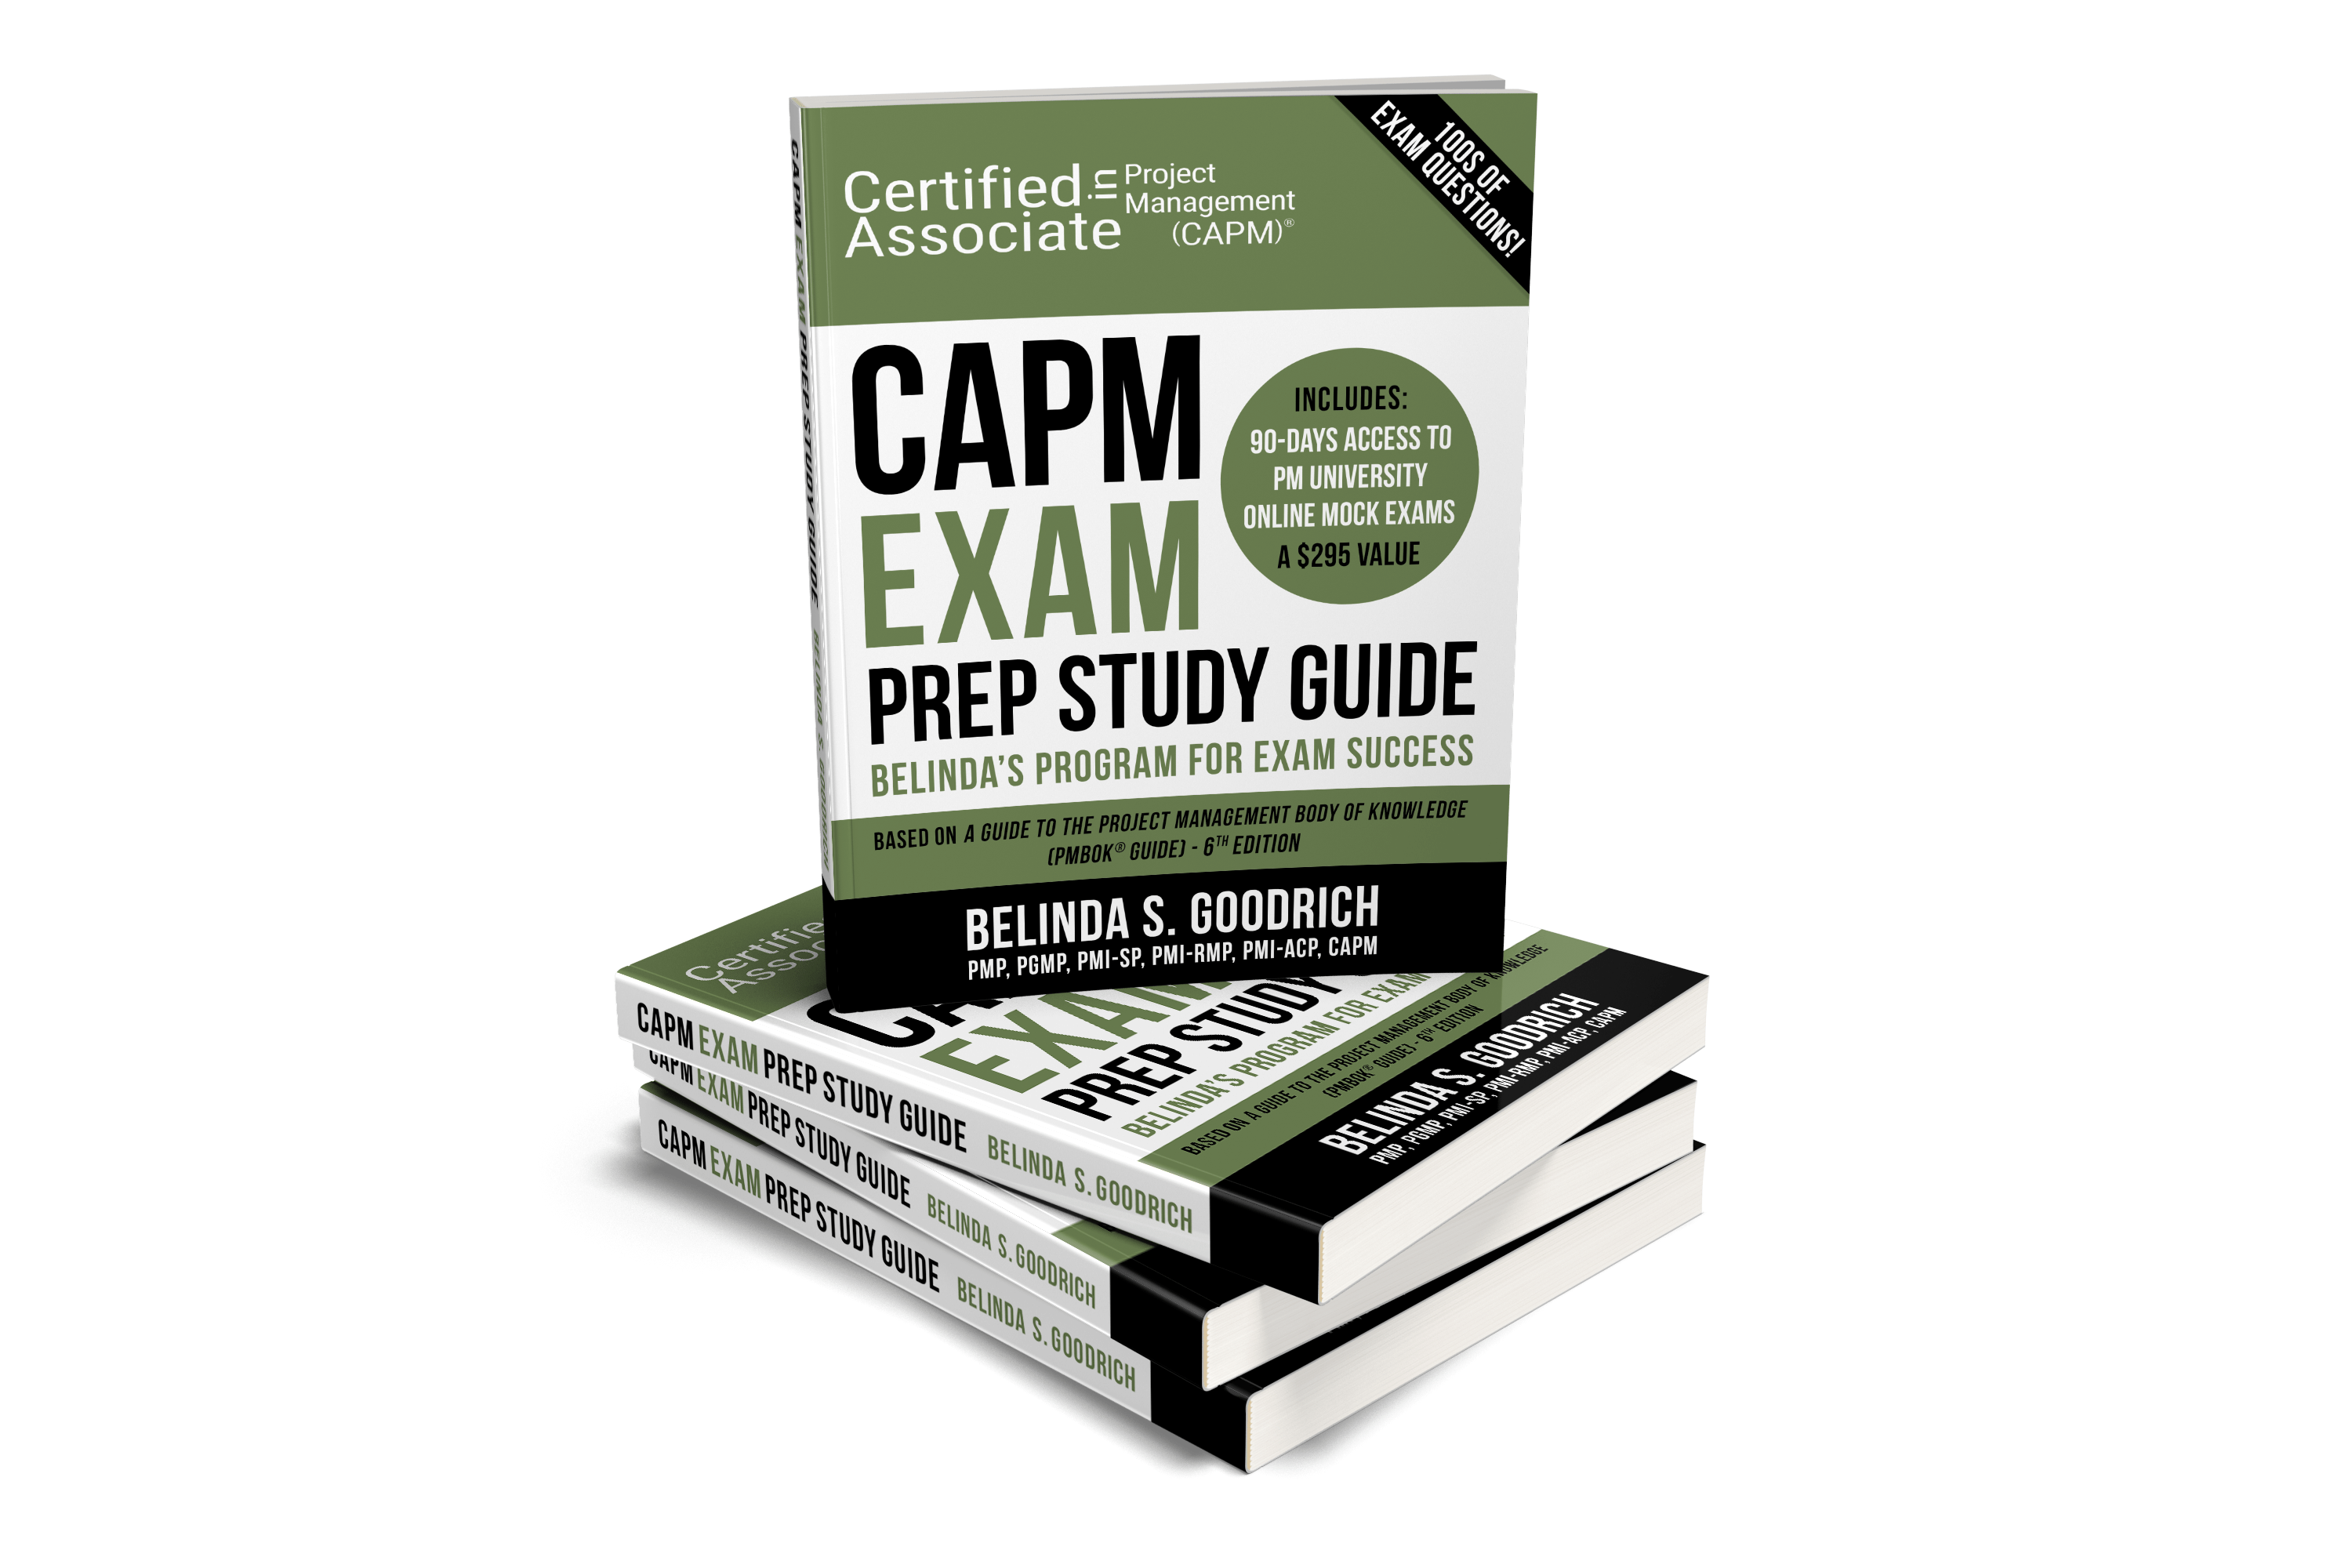 CAPM Exam Book Cover- Mockup